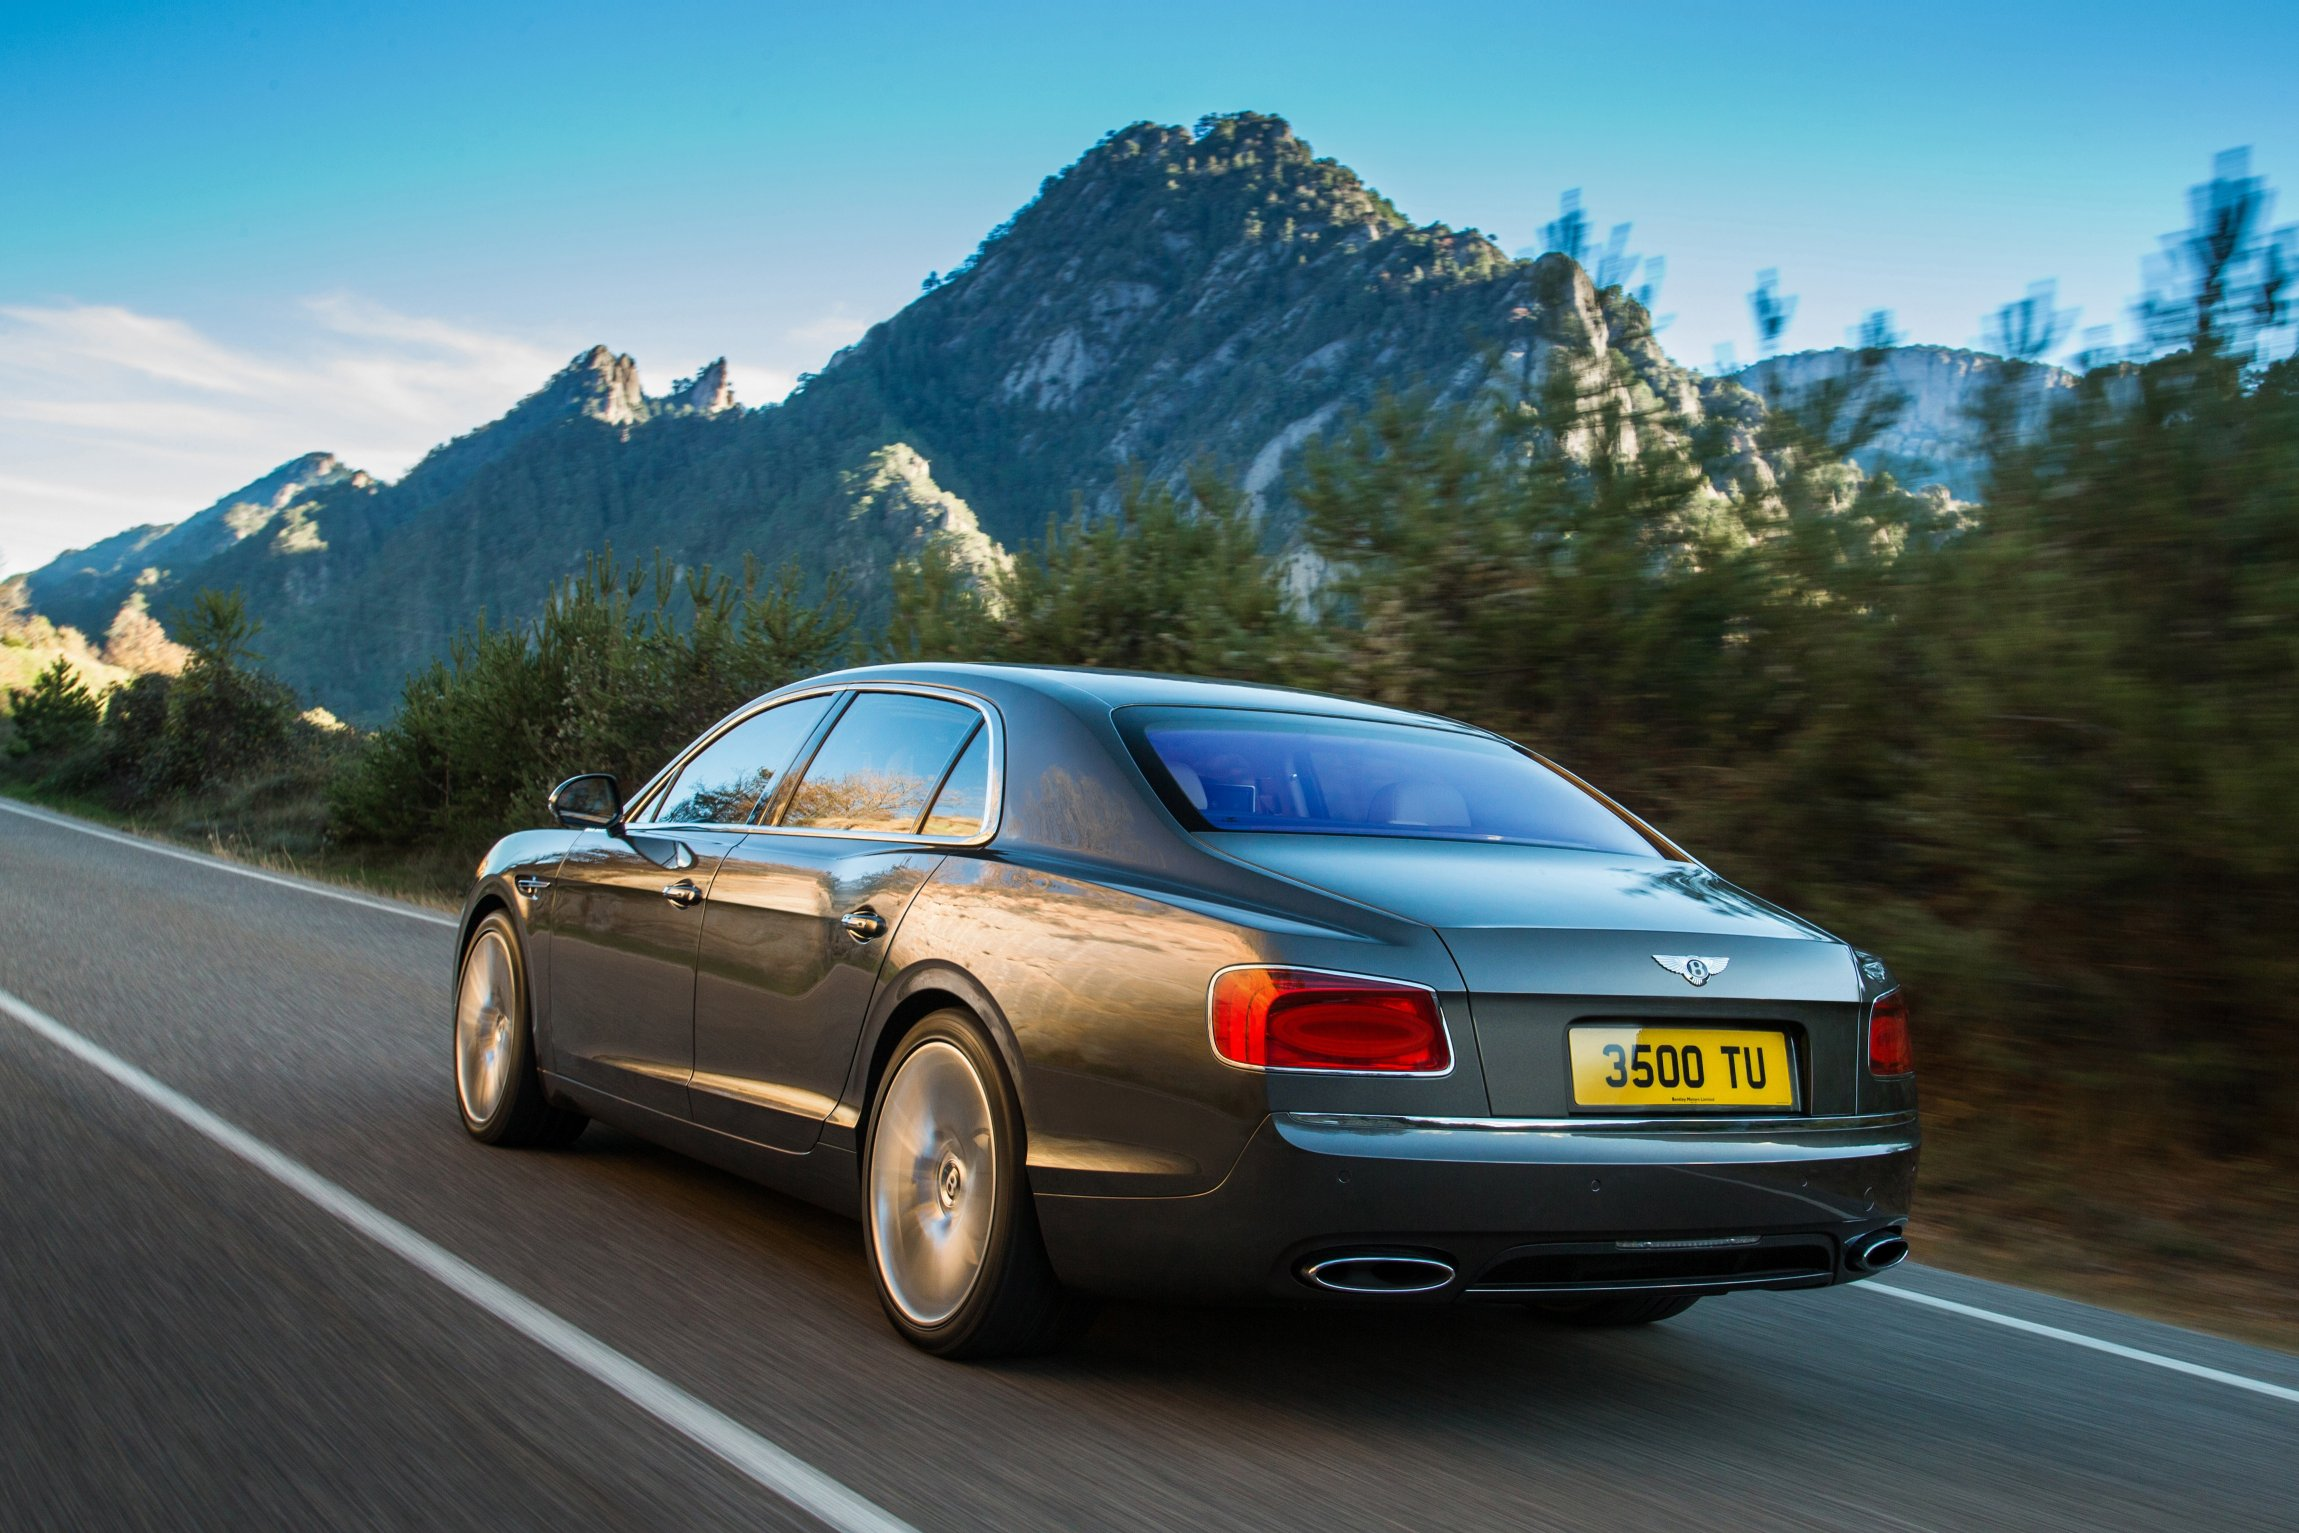 The exterior styling of the 2014 Bentley Flying Spur sedan retains many of the familiar lines that first made their debut on the two door Continental ... & Bentley Previews 2014 Flying Spur Sedan - Autosavant | Autosavant